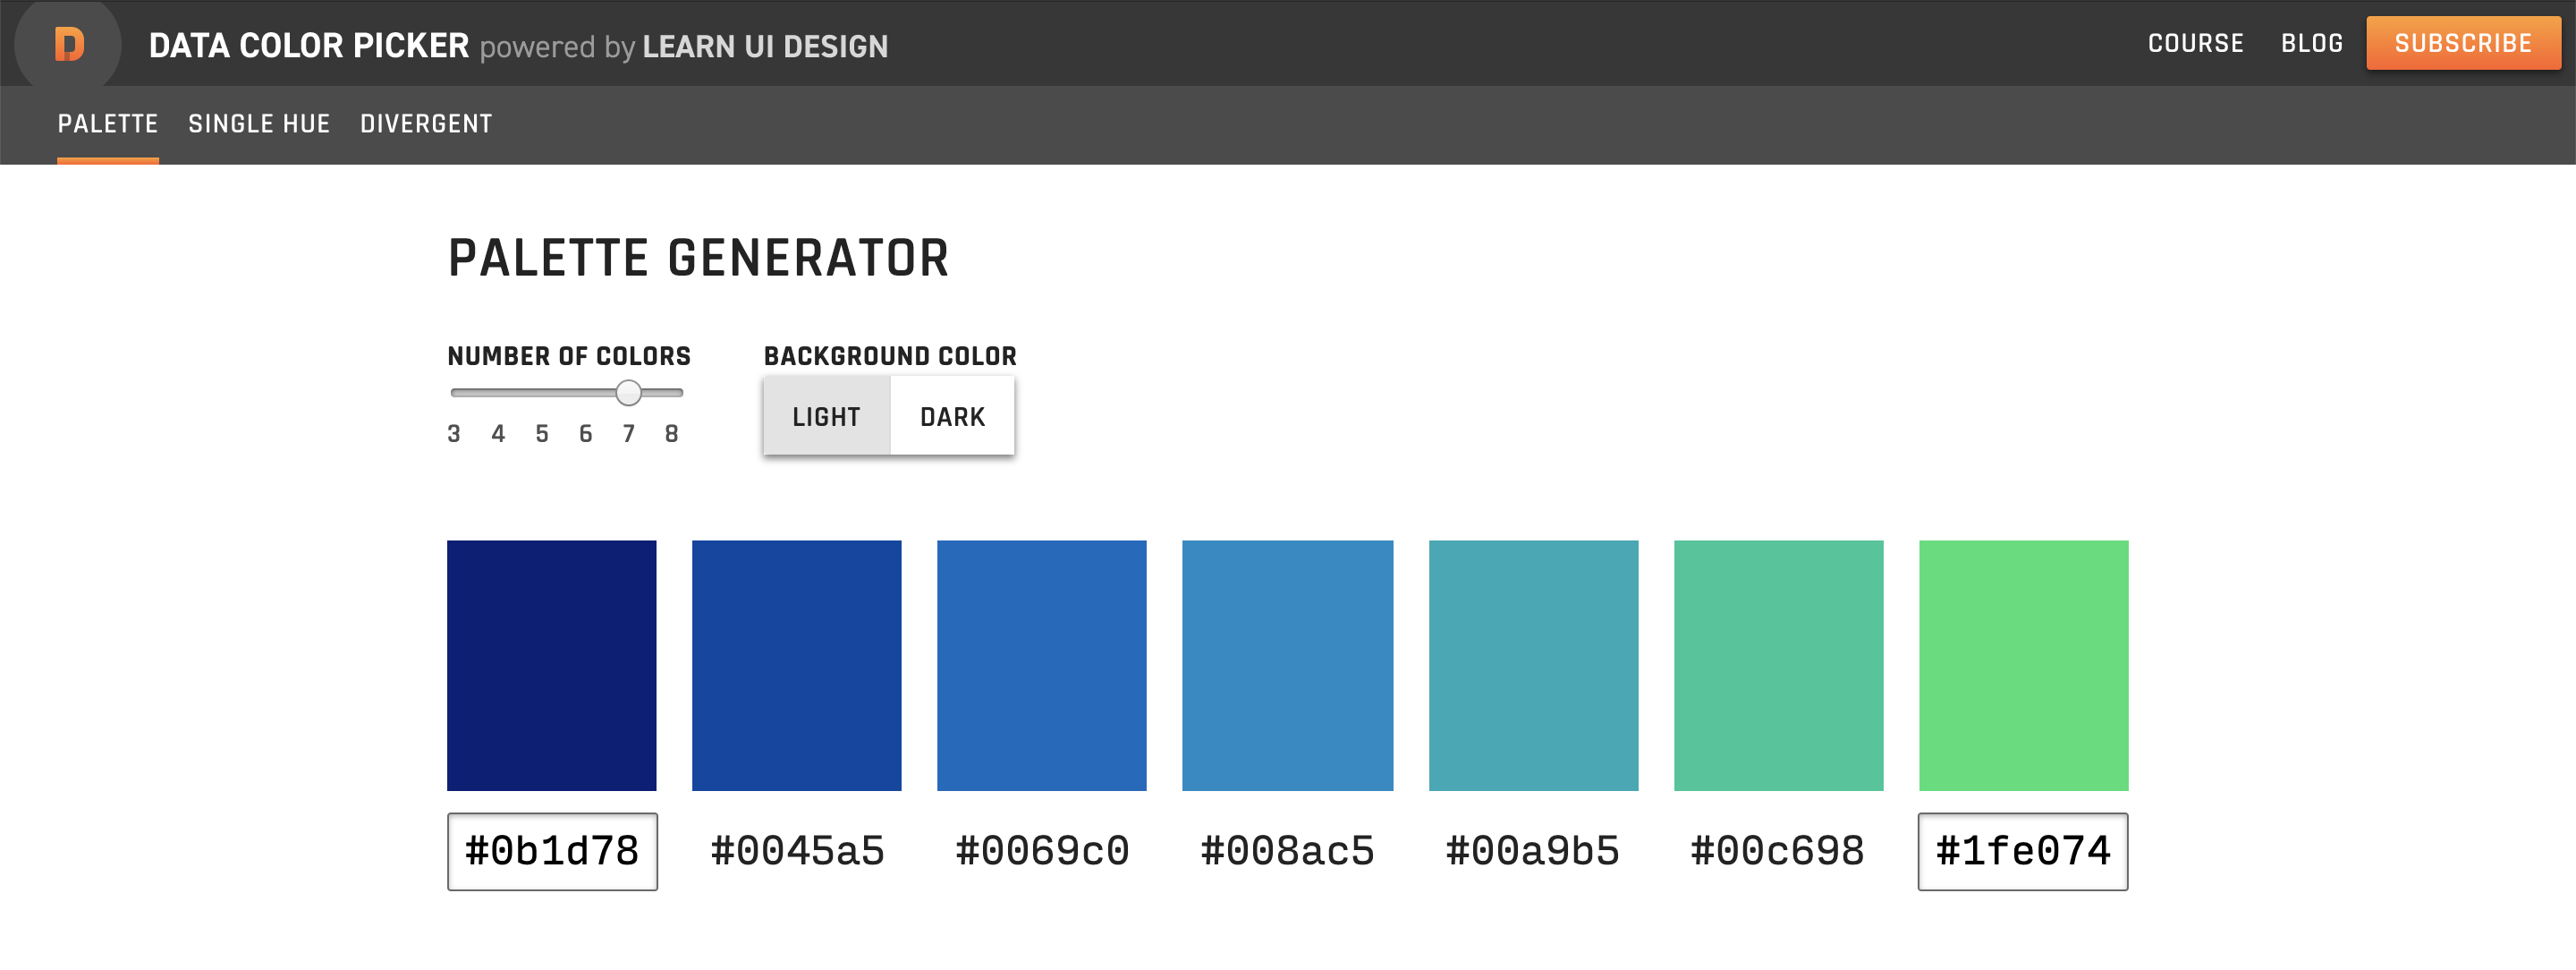 Screenshot of the Data Color Picker site with a blue-to-green sequential palette.